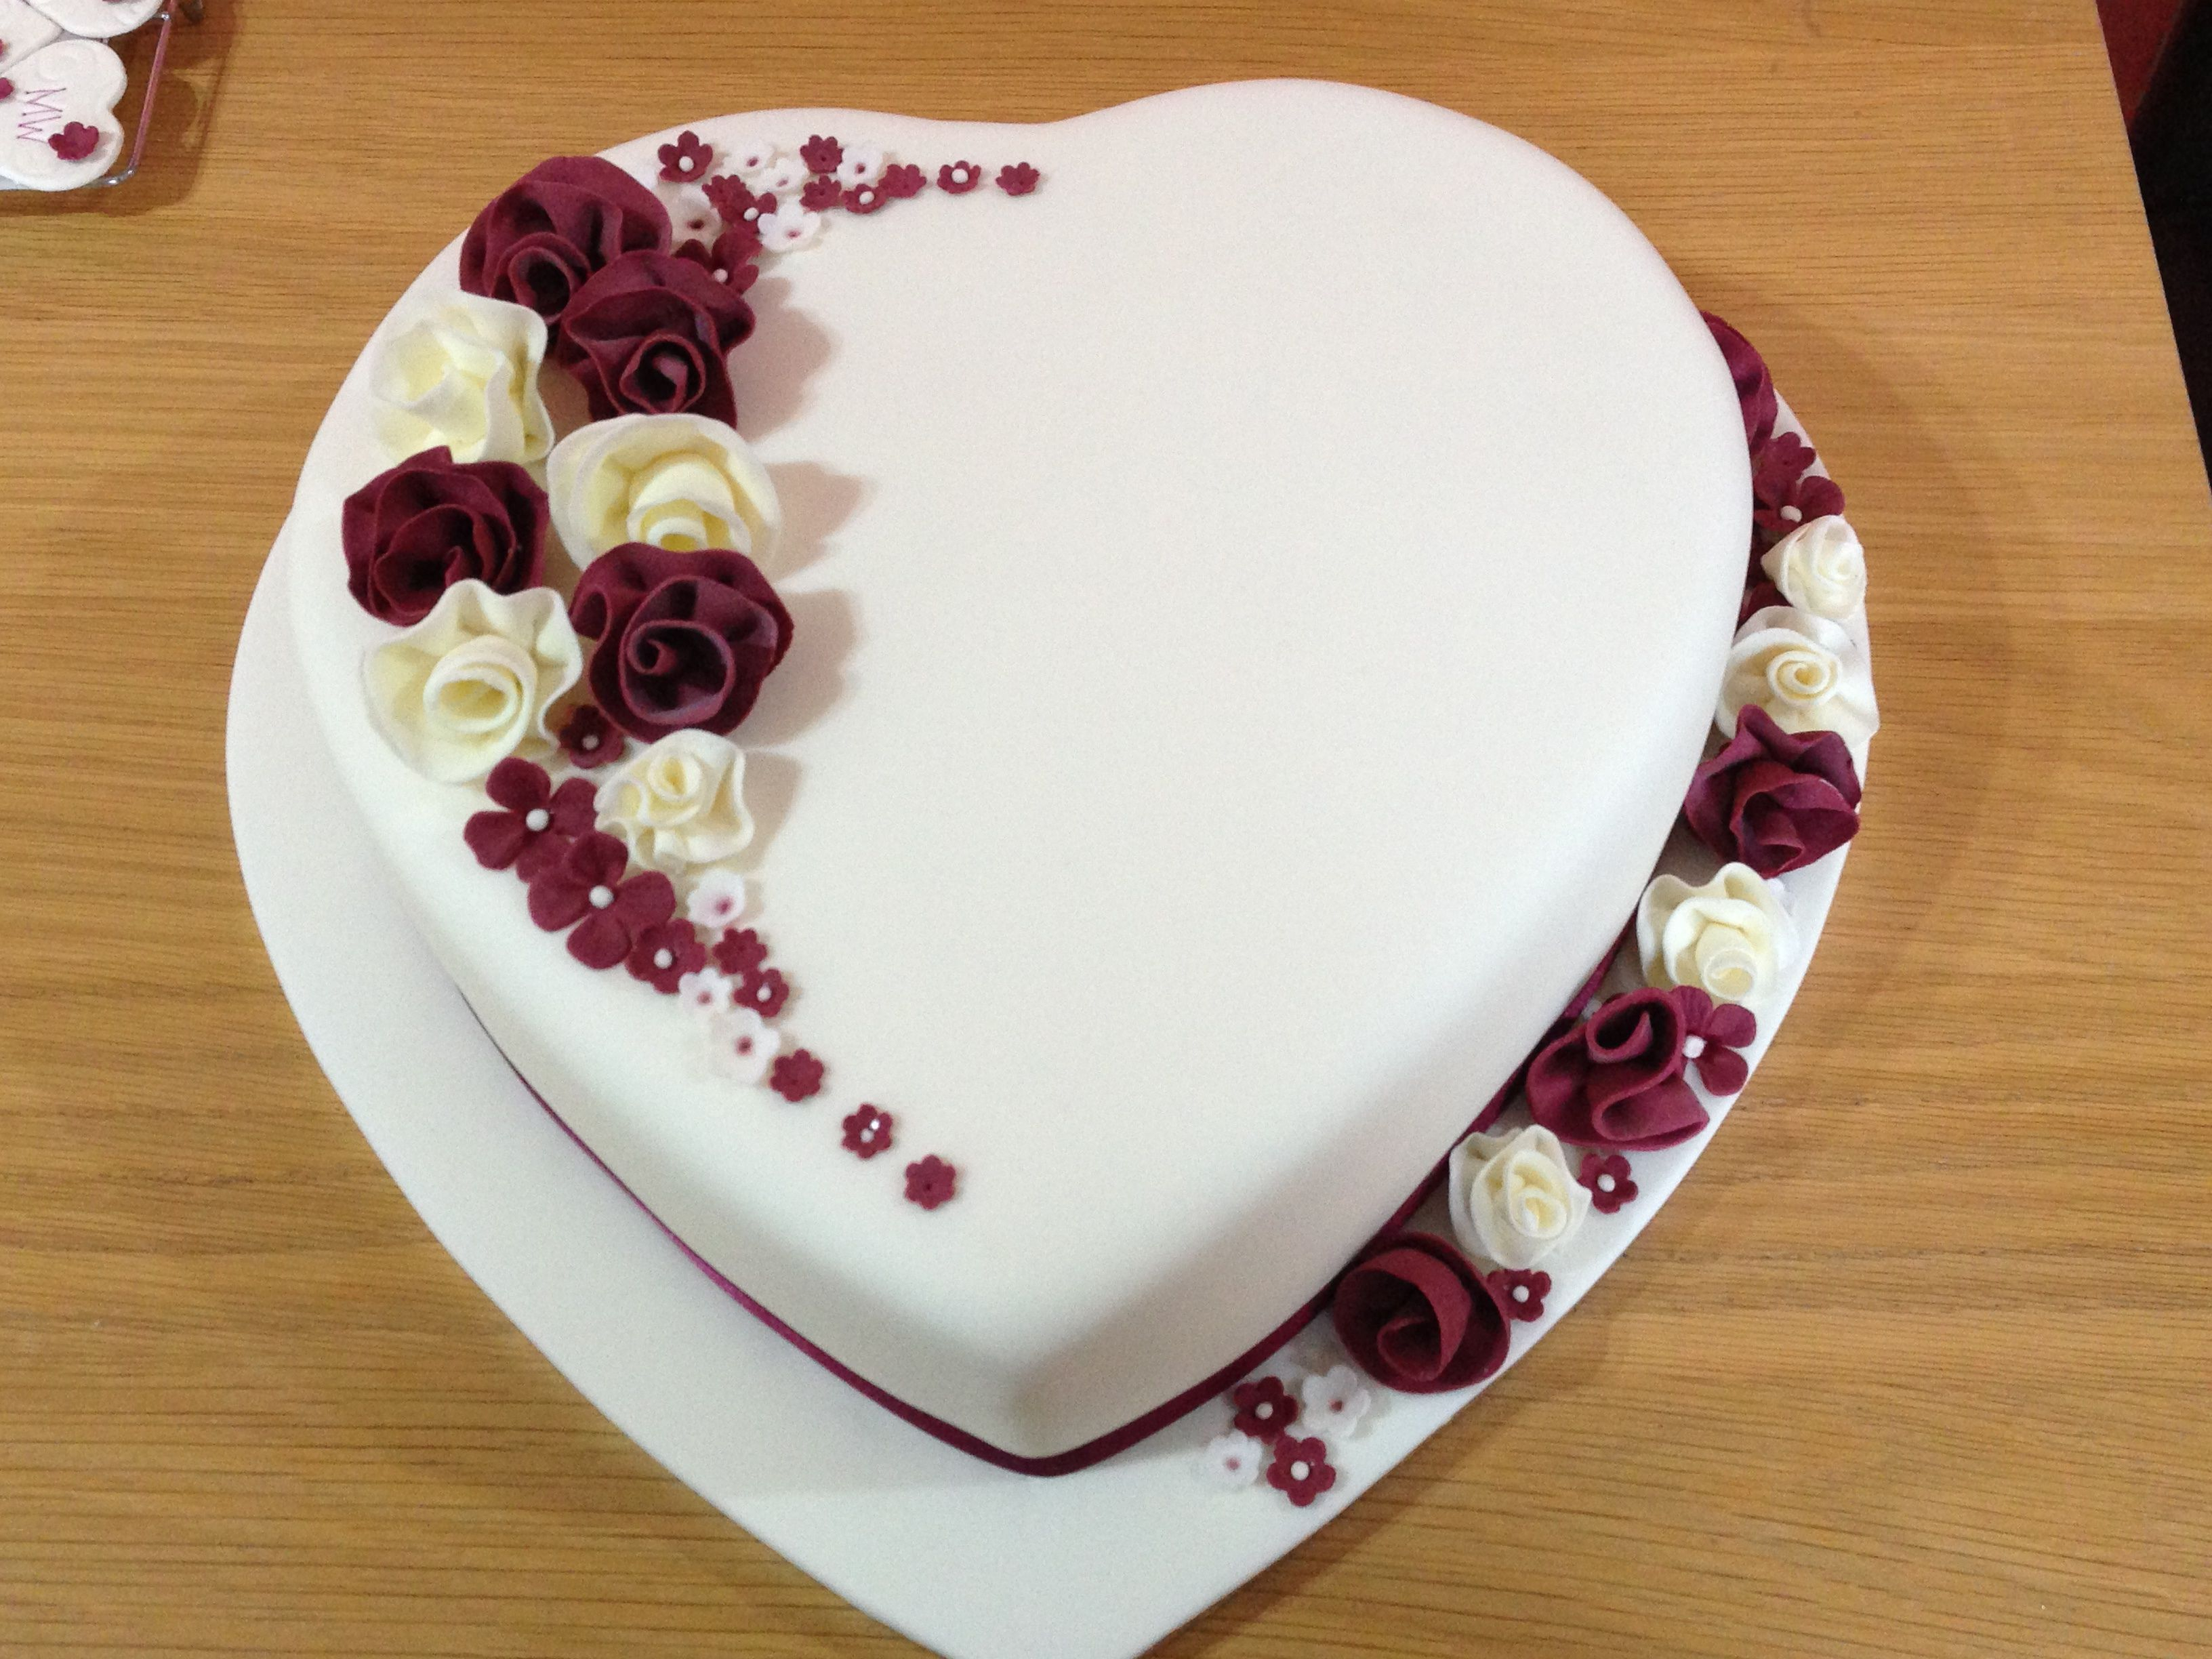 heart shaped wedding cake with whimsical flowers - fondant covered